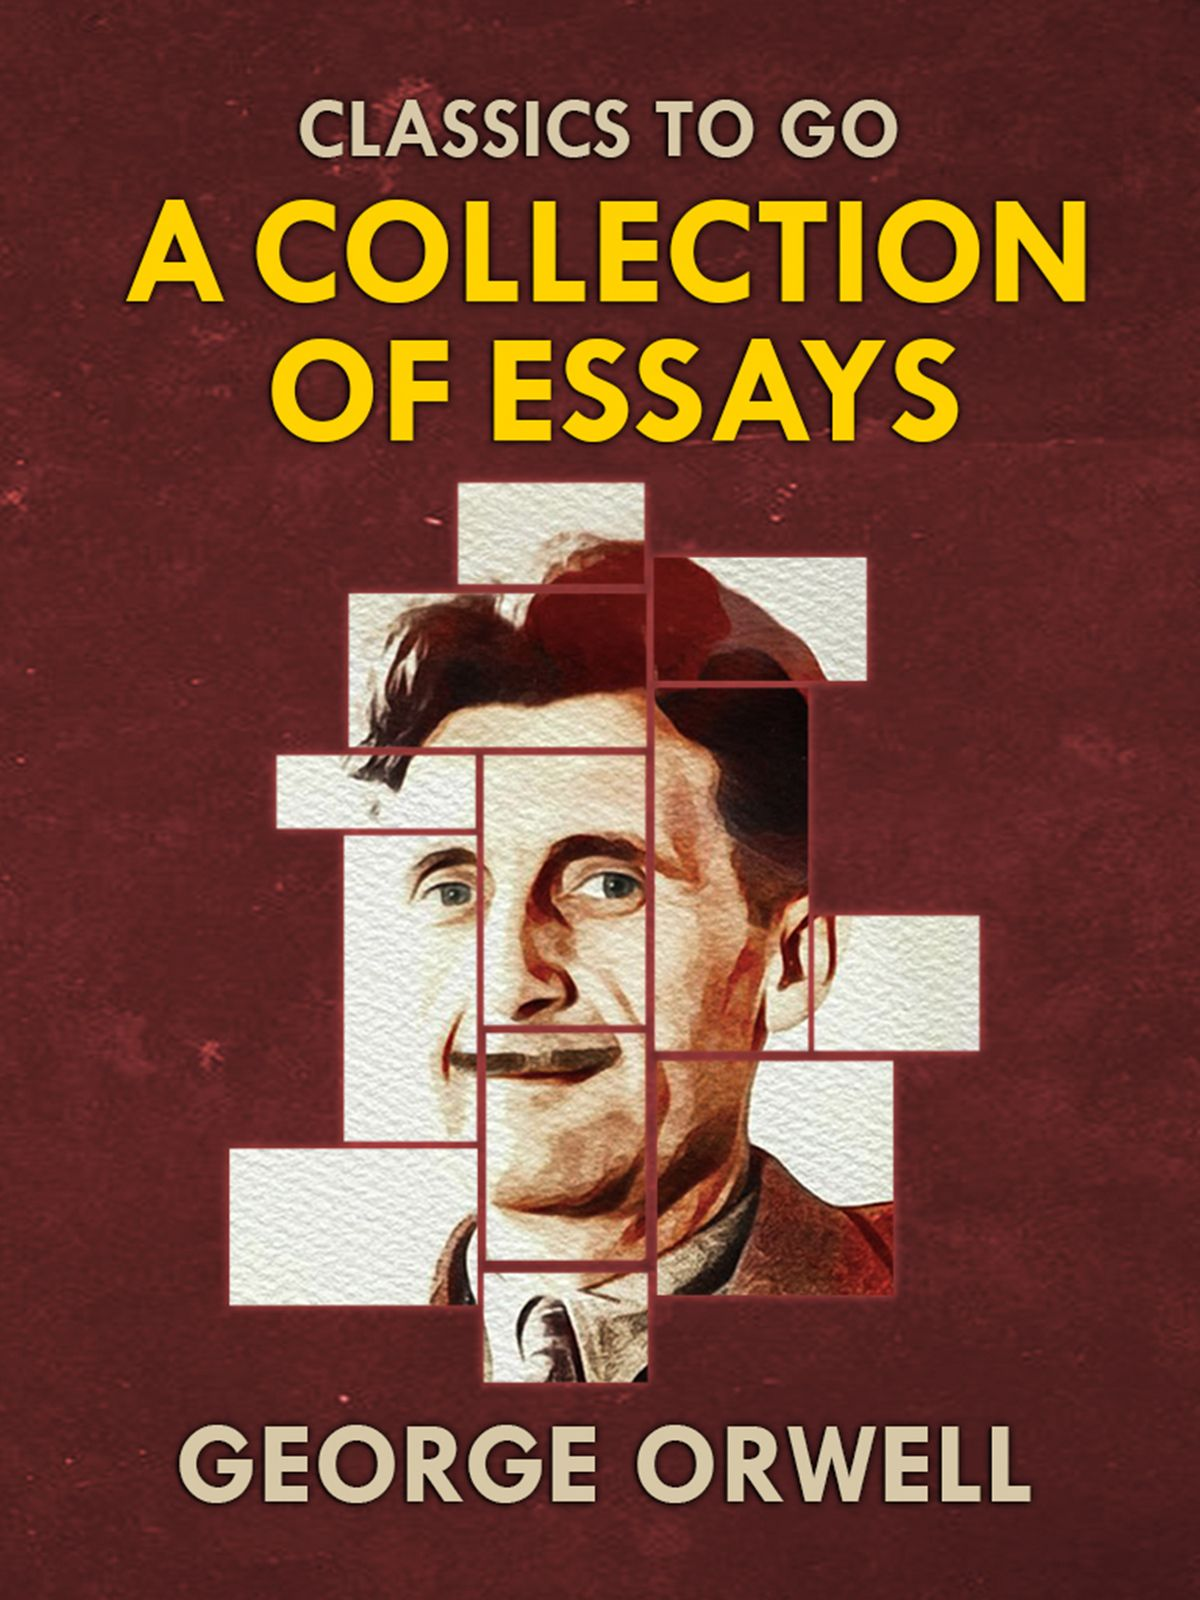 024 Collections Of George Orwell Essays Essay Frightening 1984 Summary Collected Pdf On Writing Full